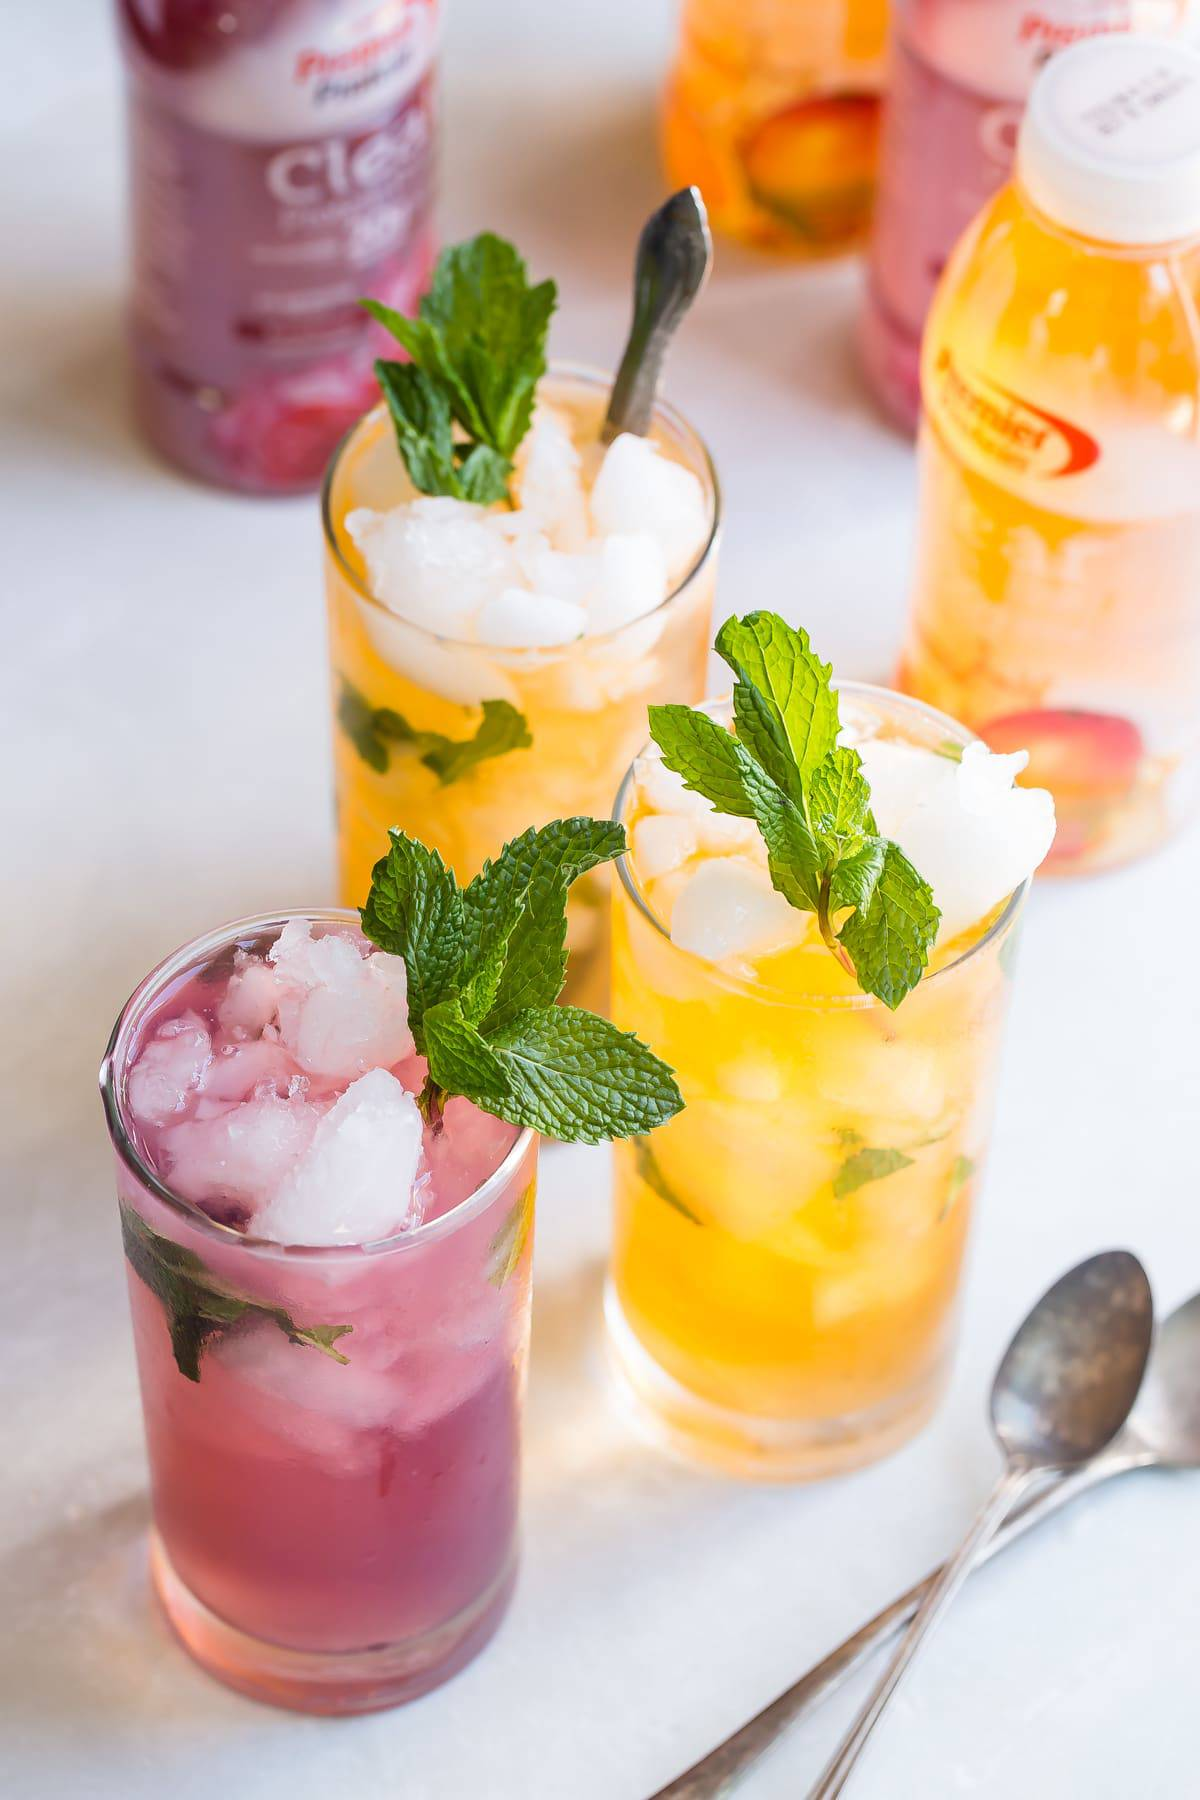 Iced protein drinks with fresh mint